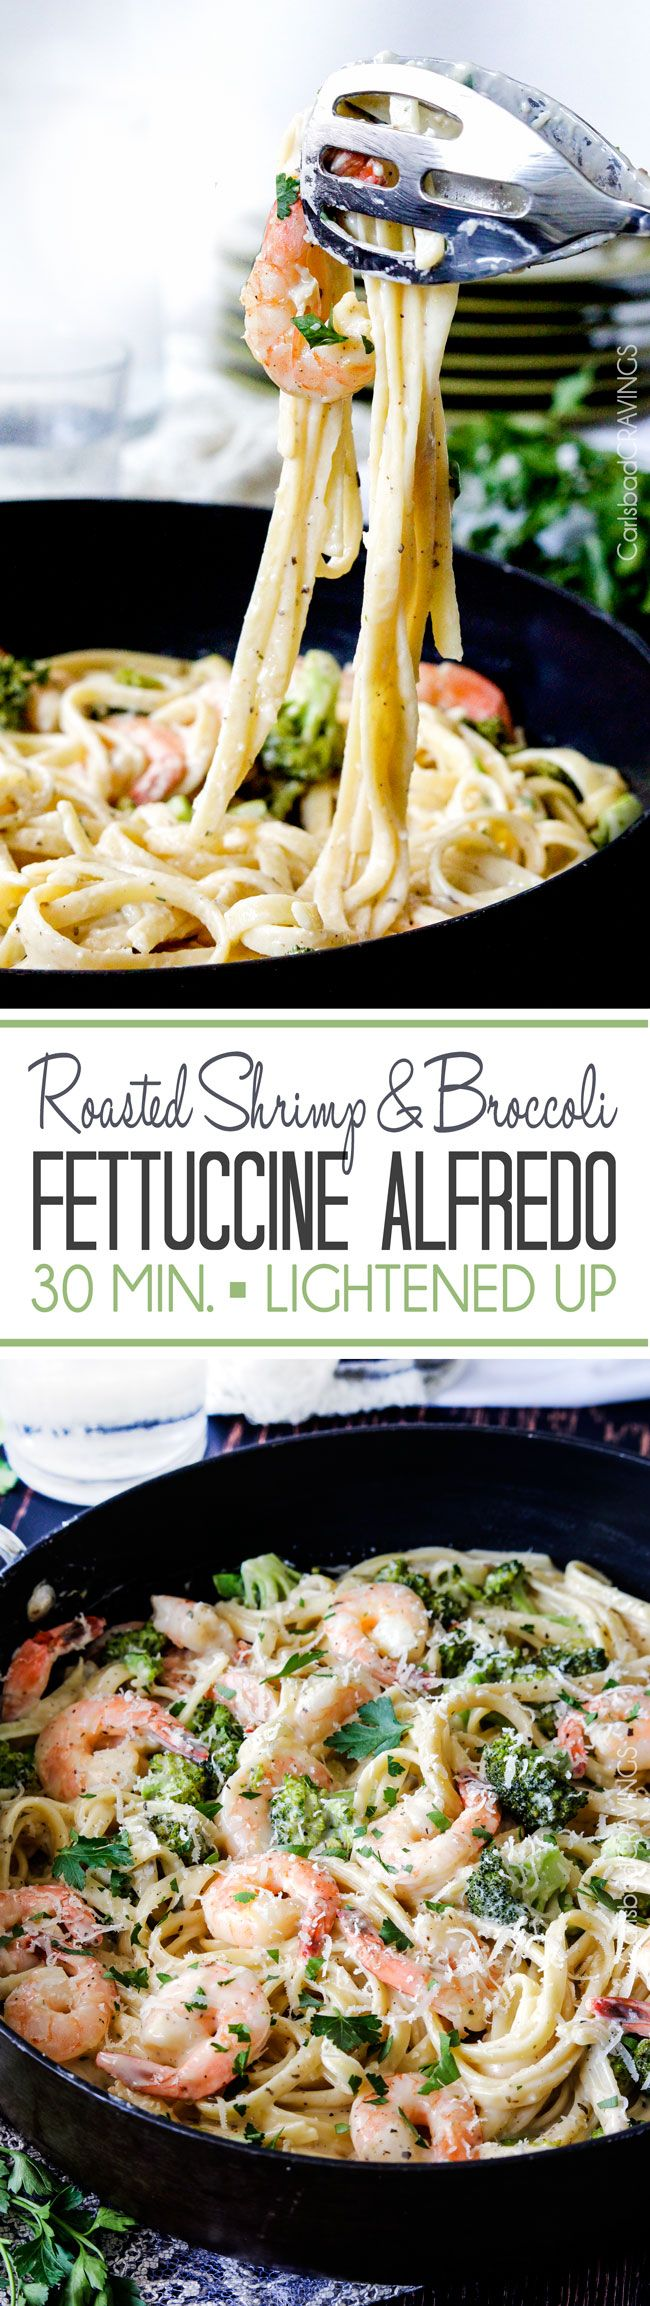 LIGHTENED up 30 Minute Roasted Shrimp and Broccoli in a velvety, creamy Garlic Parmesan Mozzarella Alfredo Sauce without the guilt.